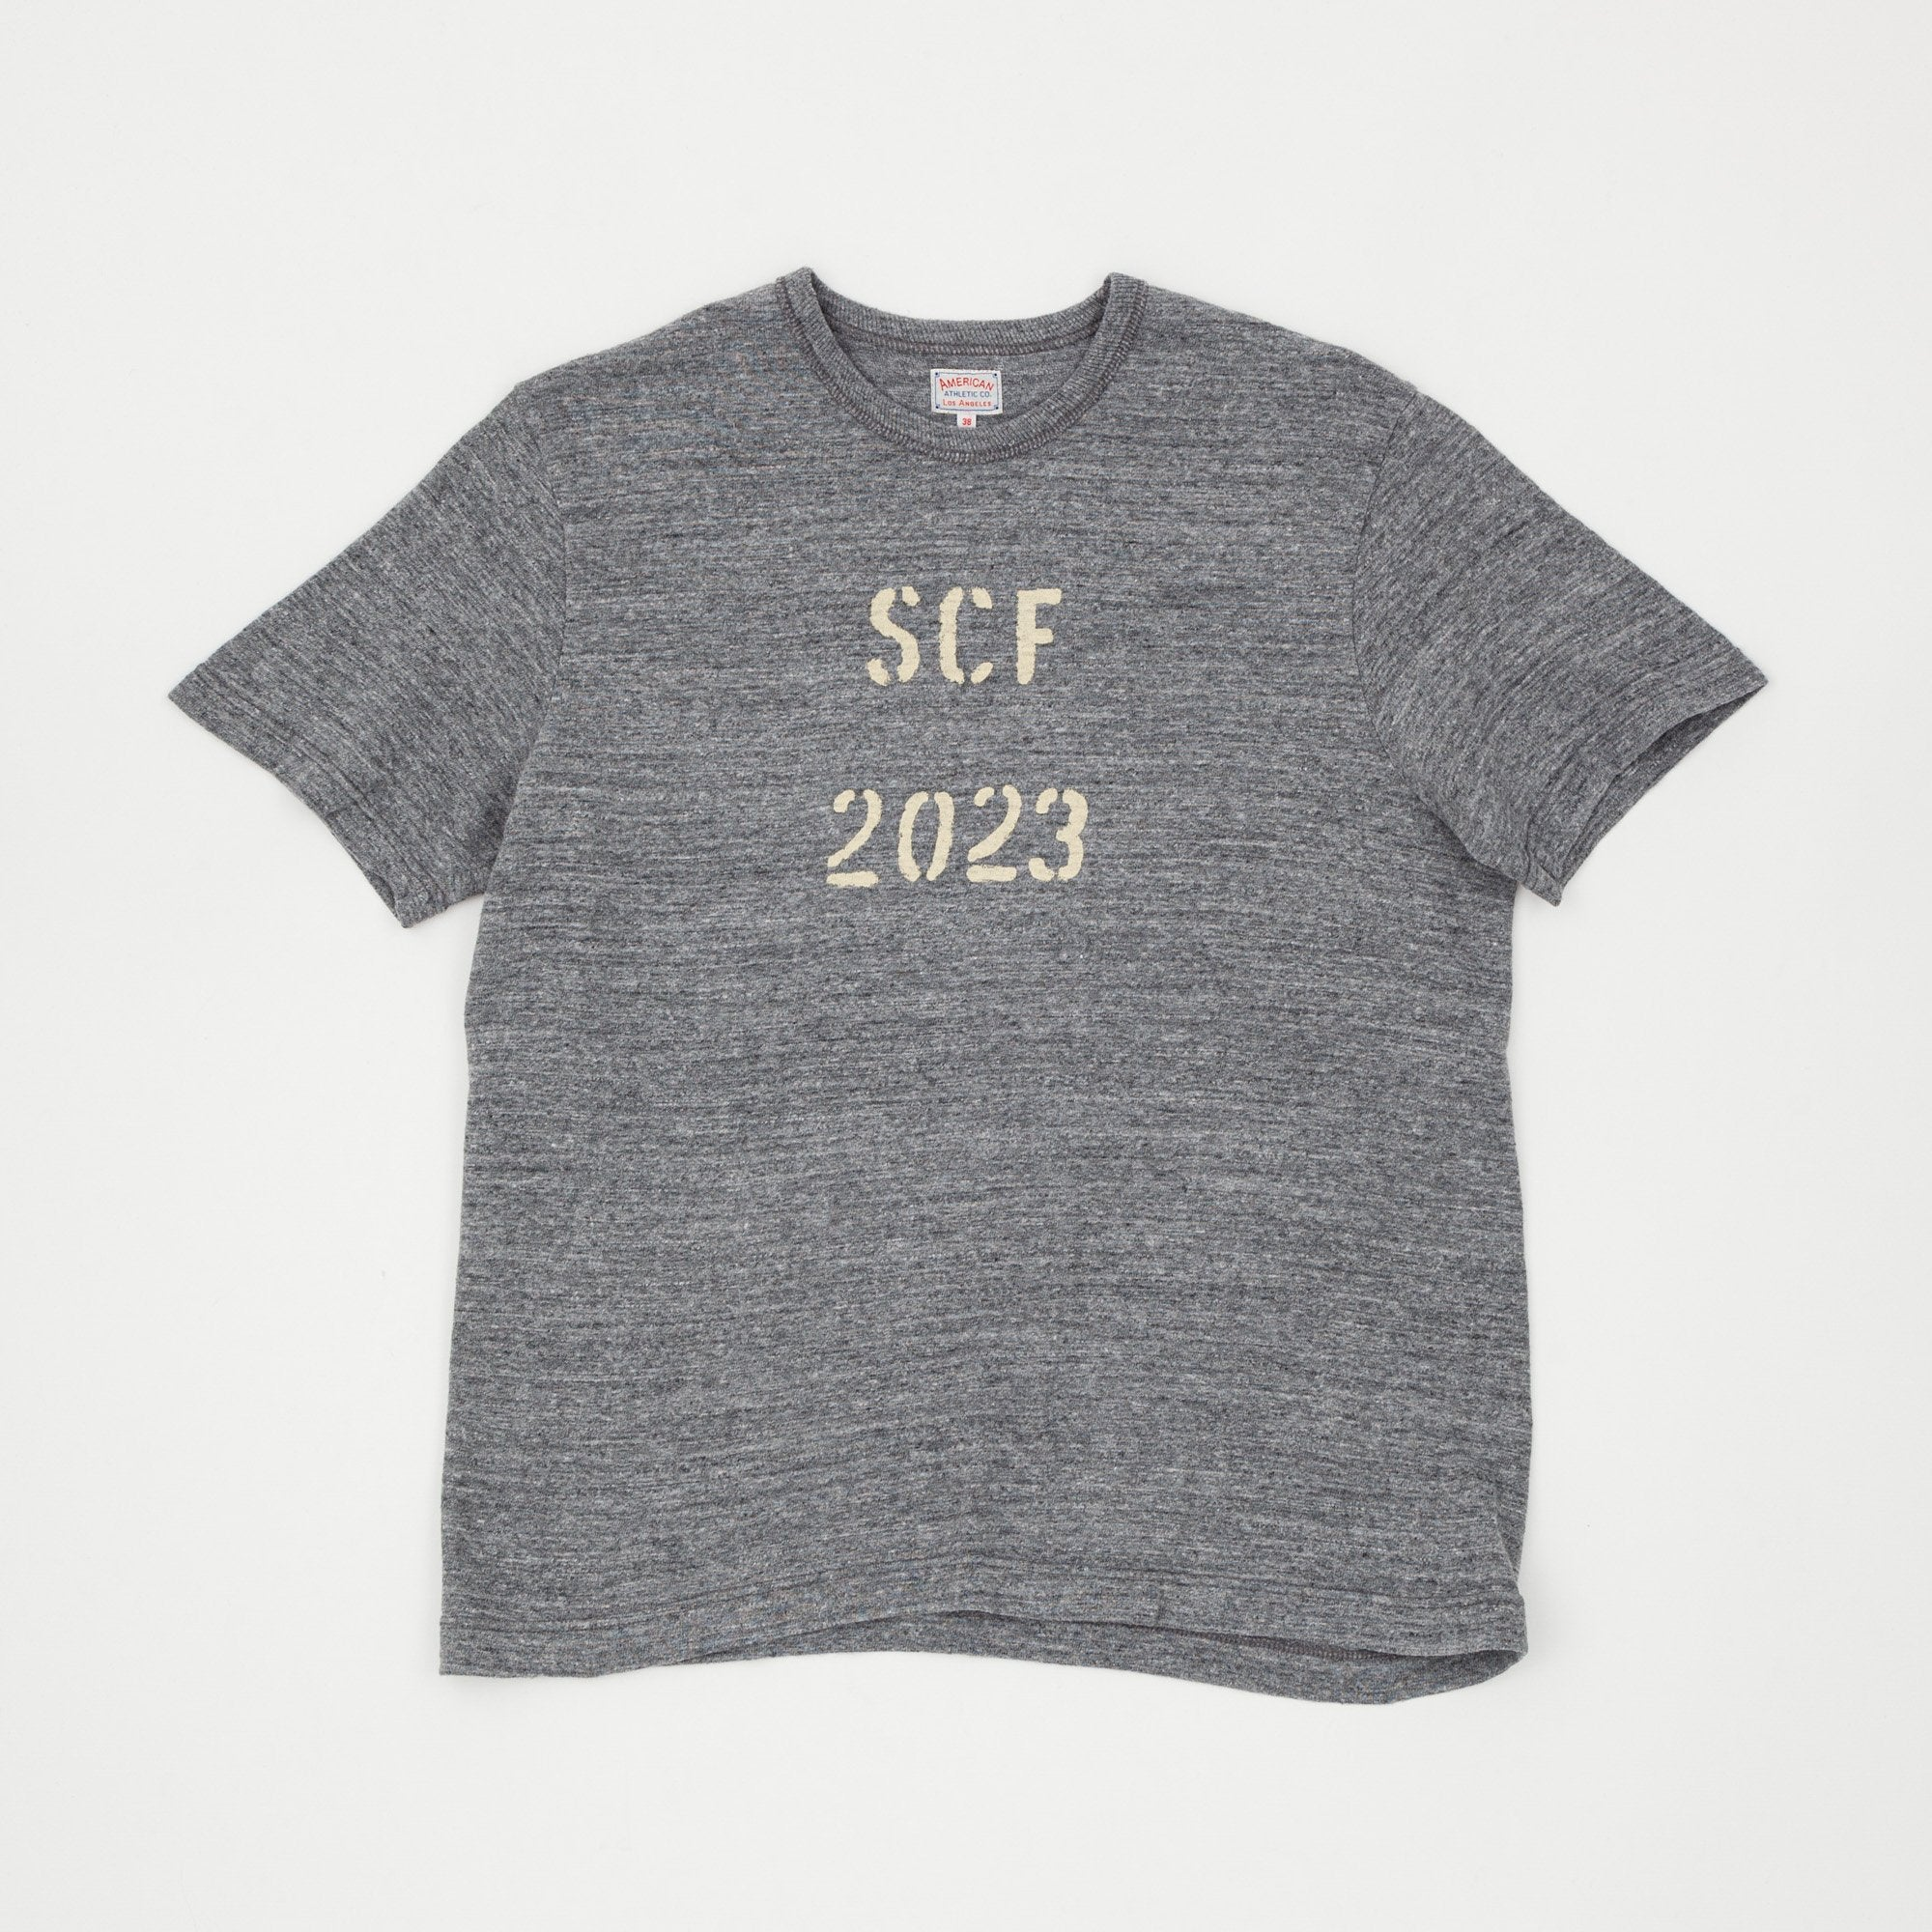 The Real McCoy's American Athletic Tee | SCF 2023